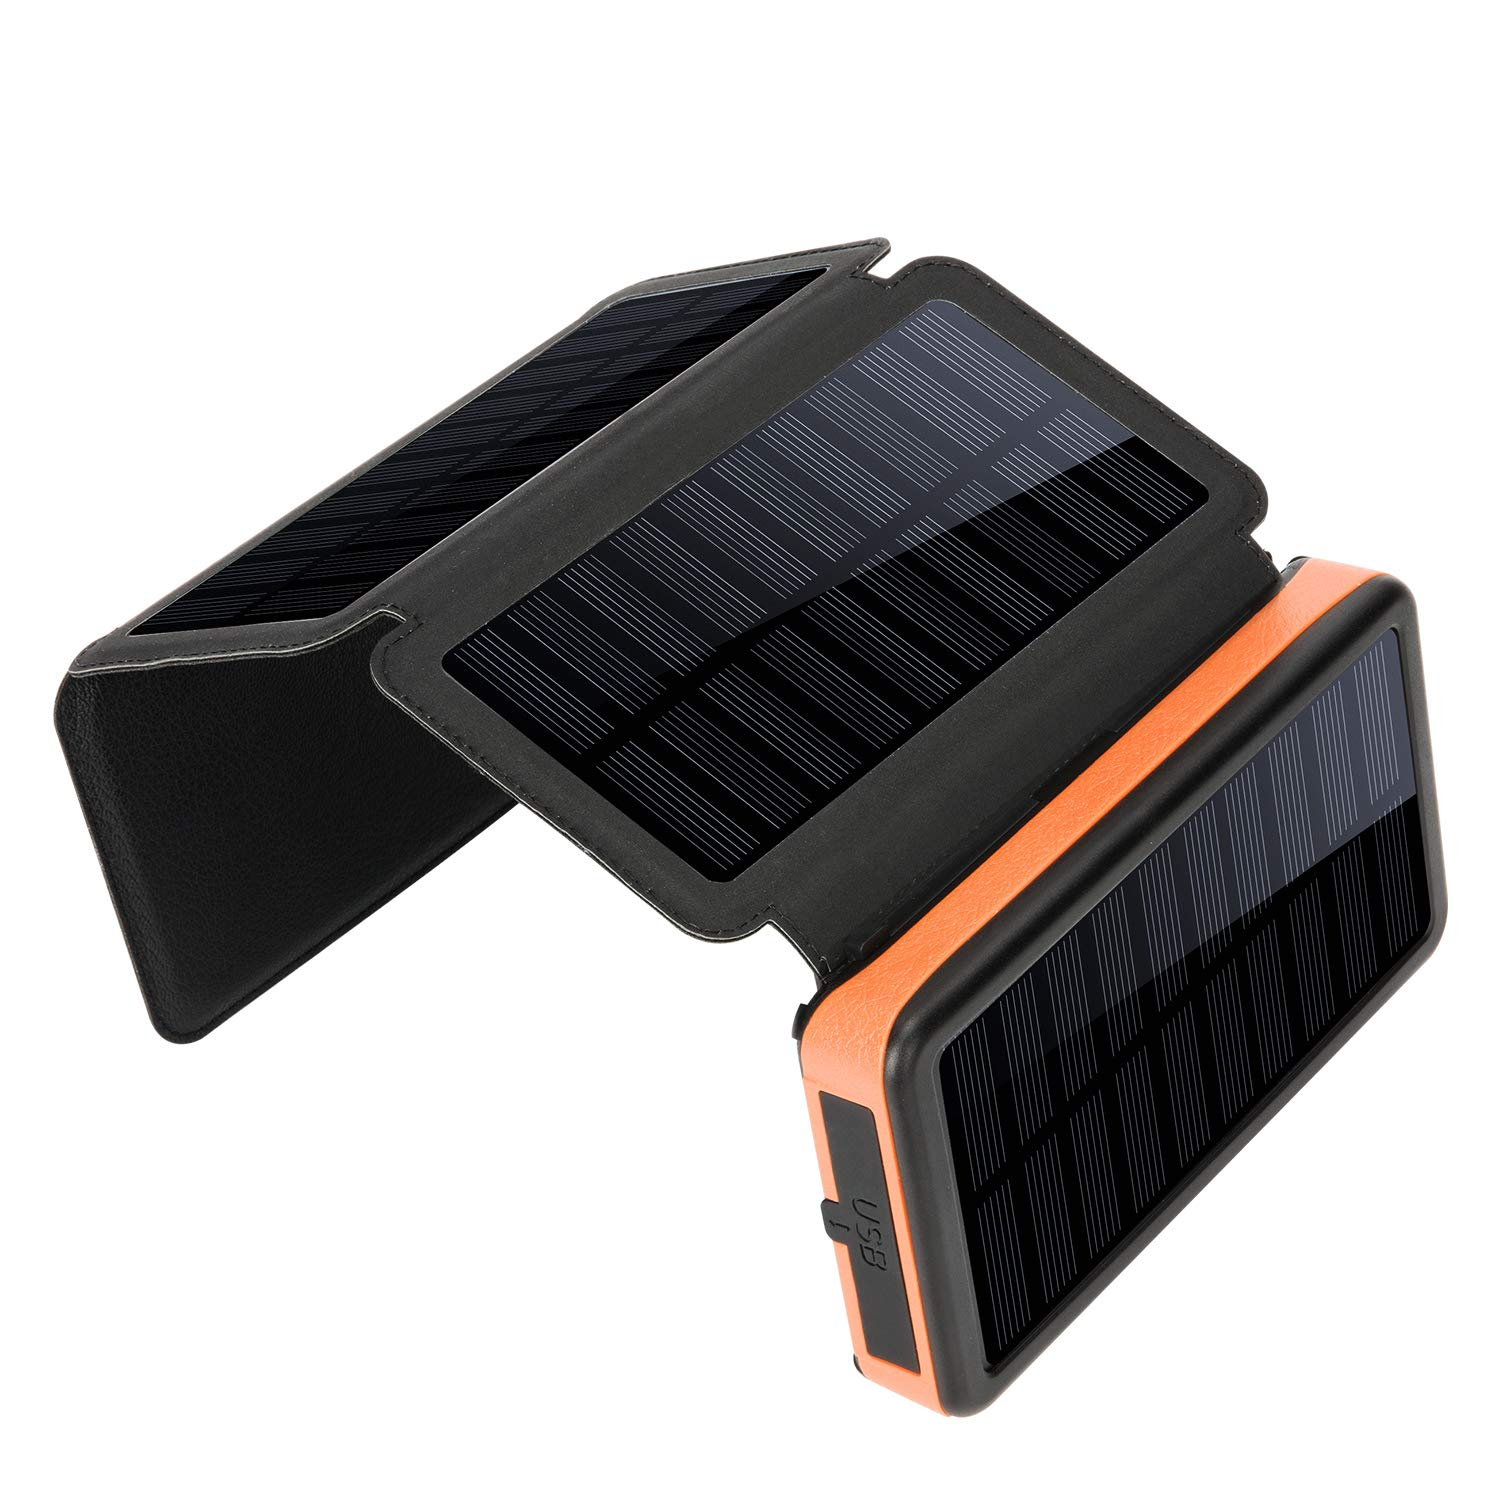 X-DNENG Solar Charger 4 Solar Panels Detachable Emergency Power Bank 20000mAh with USB C Higher Efficiency Outdoor Carabiner Waterproof for Cycling Hiking Tavel Outdoor Activities